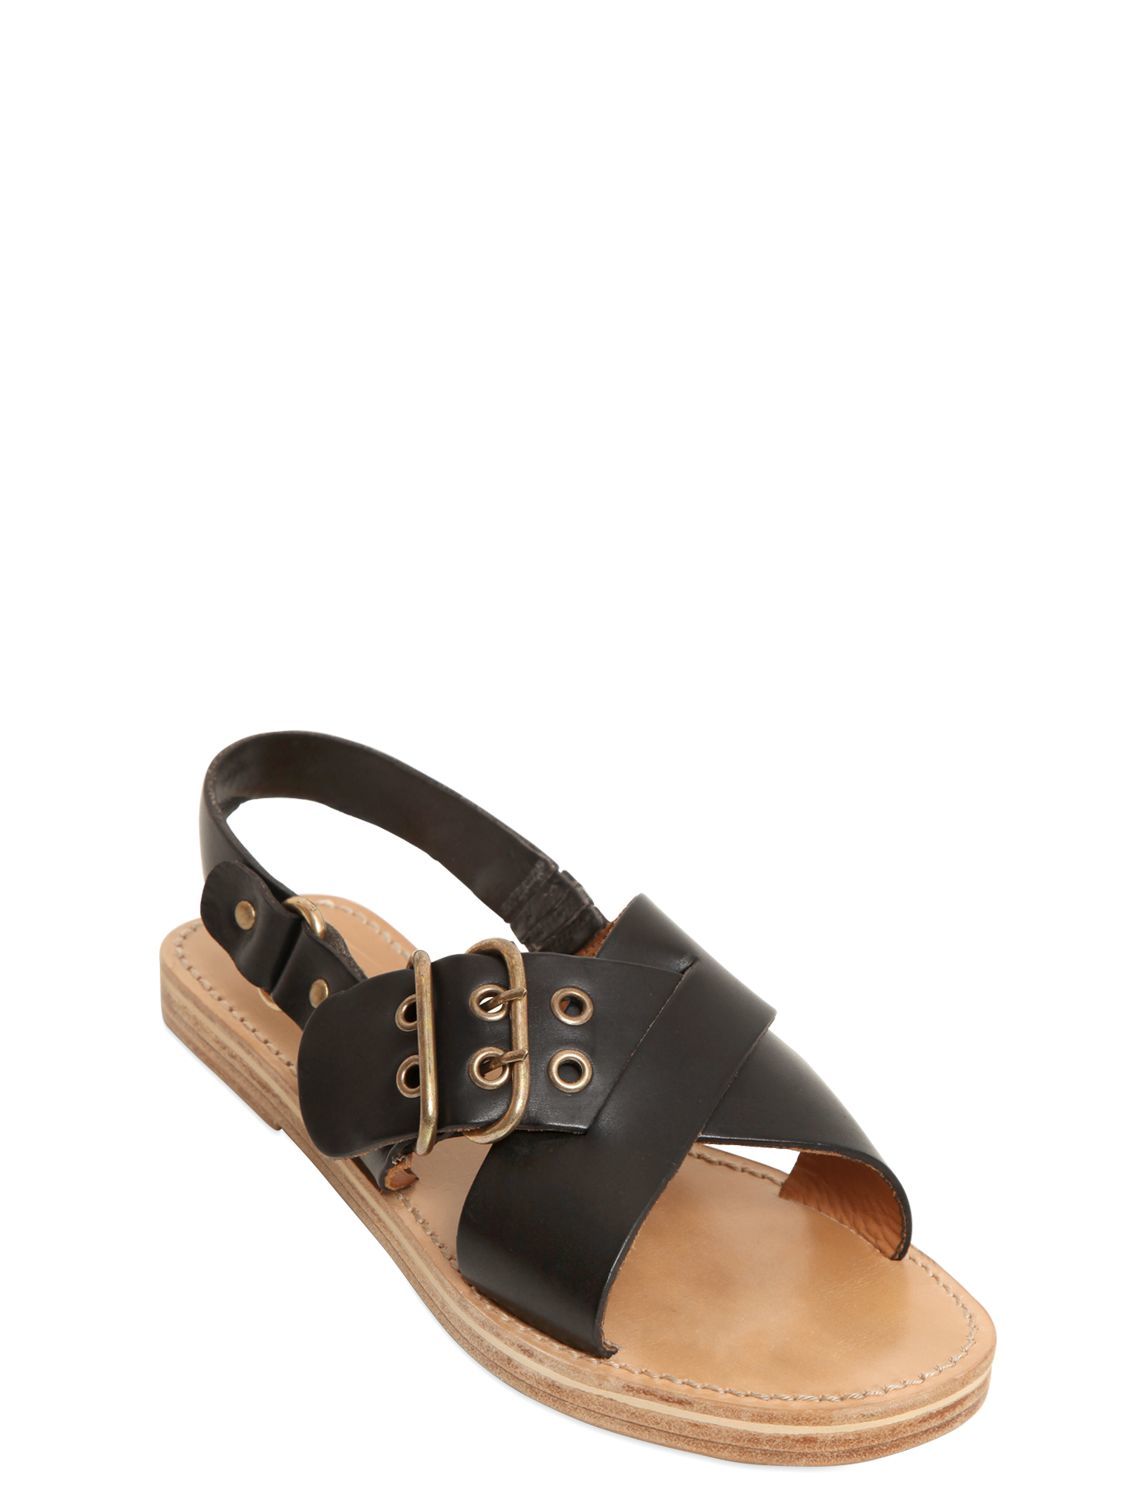 Étoile Isabel Marant Leather Slide Sandals outlet official site IeGg2p